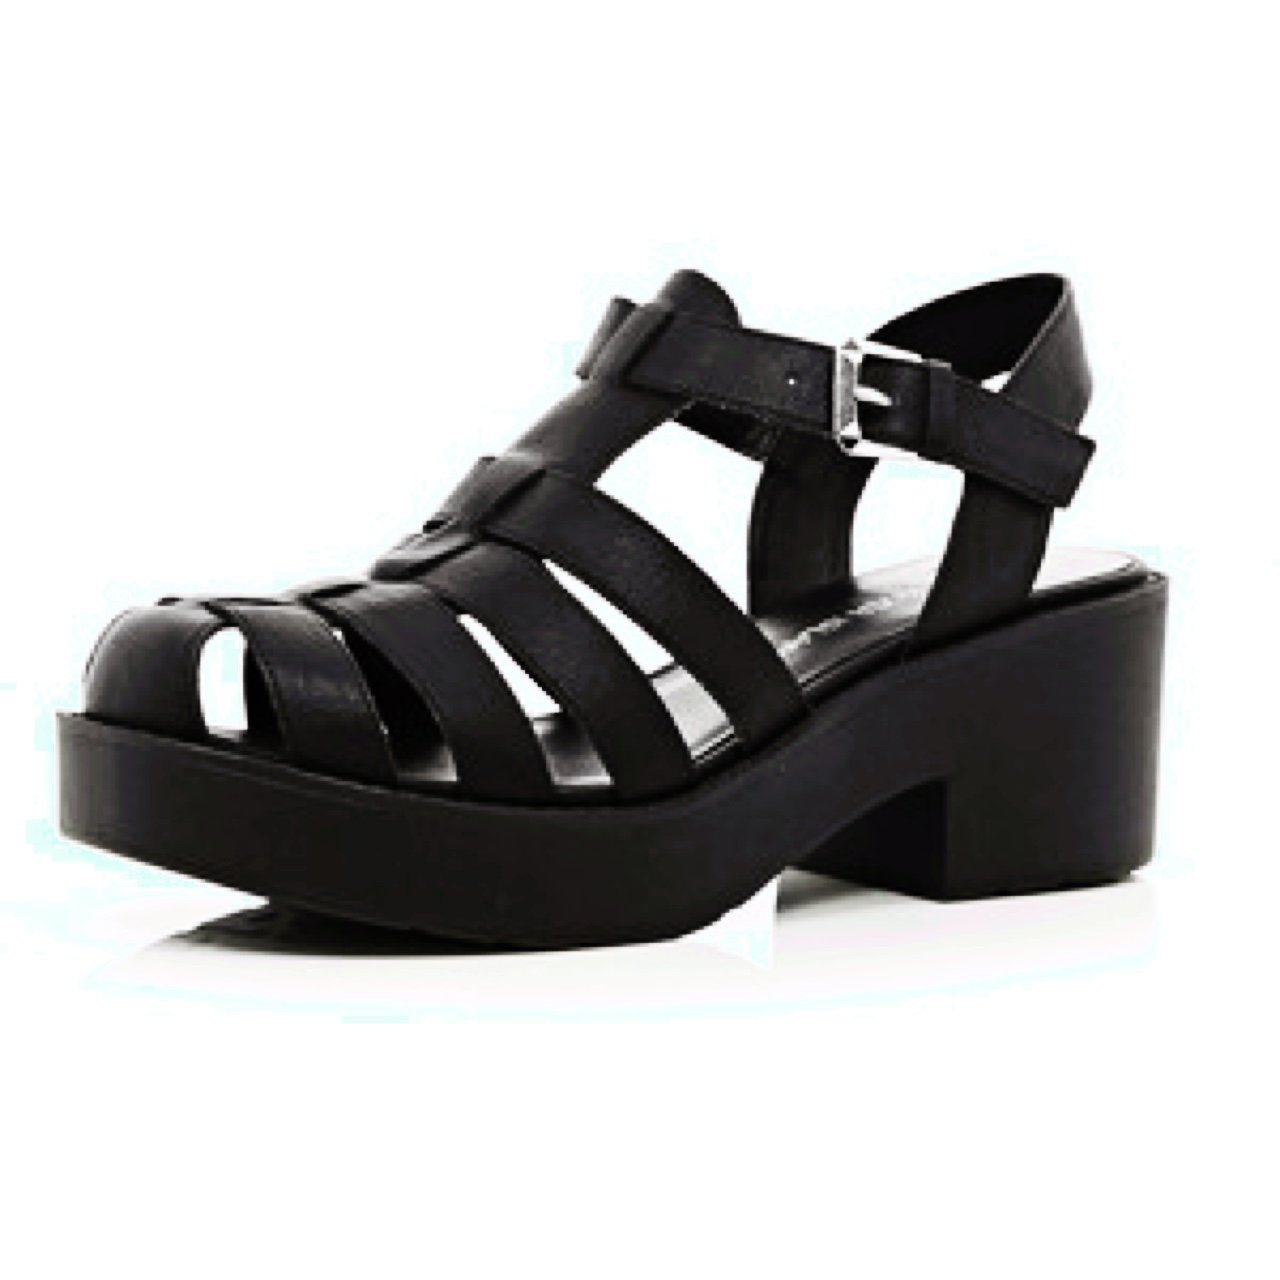 dcf37d90cc8 Brand new gladiator sandals! Do not suit me